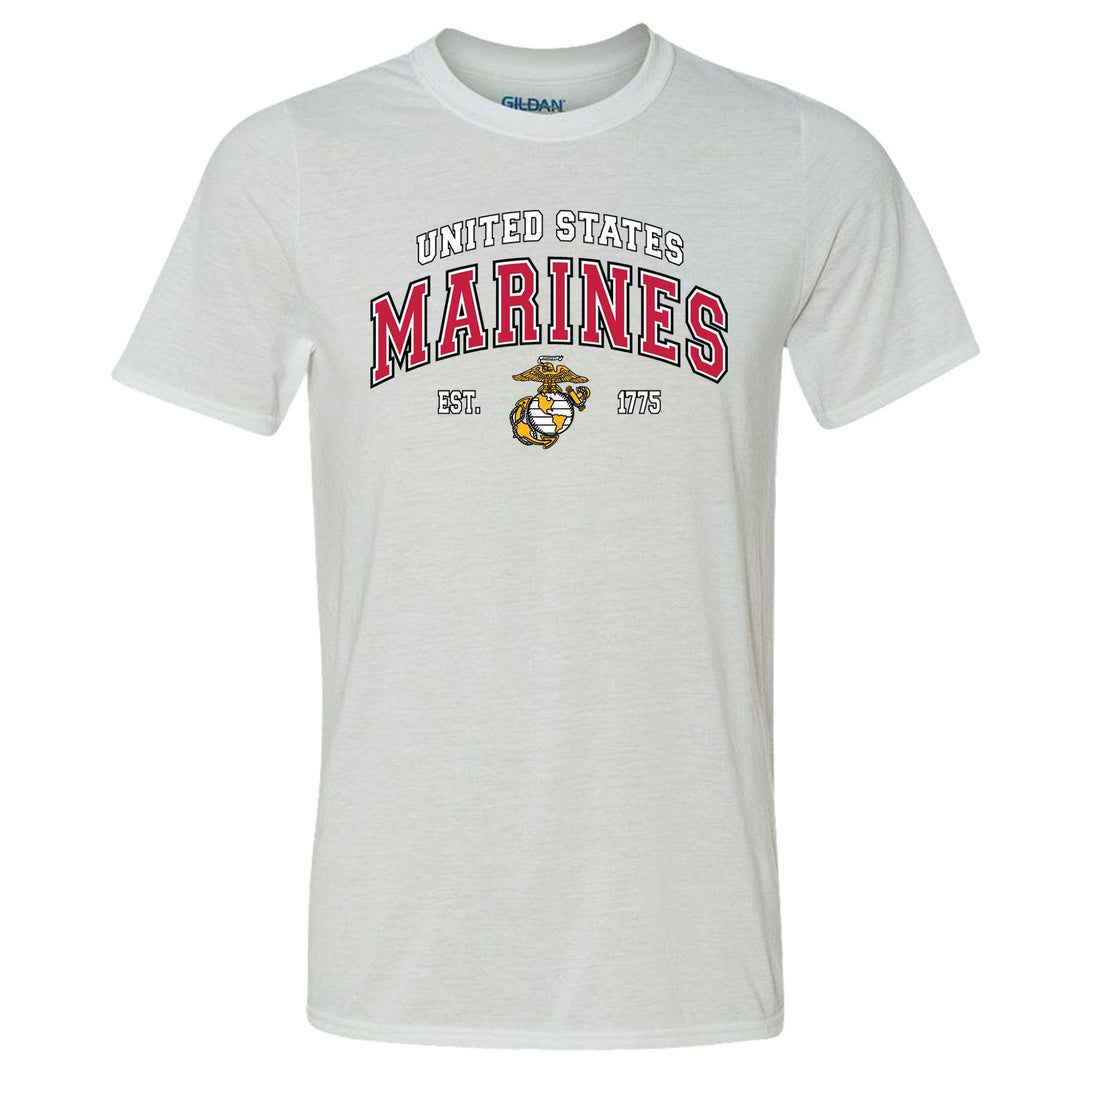 COMBAT CHARGED DRI-FIT PERFORMANCE POLY US MARINES T-SHIRT